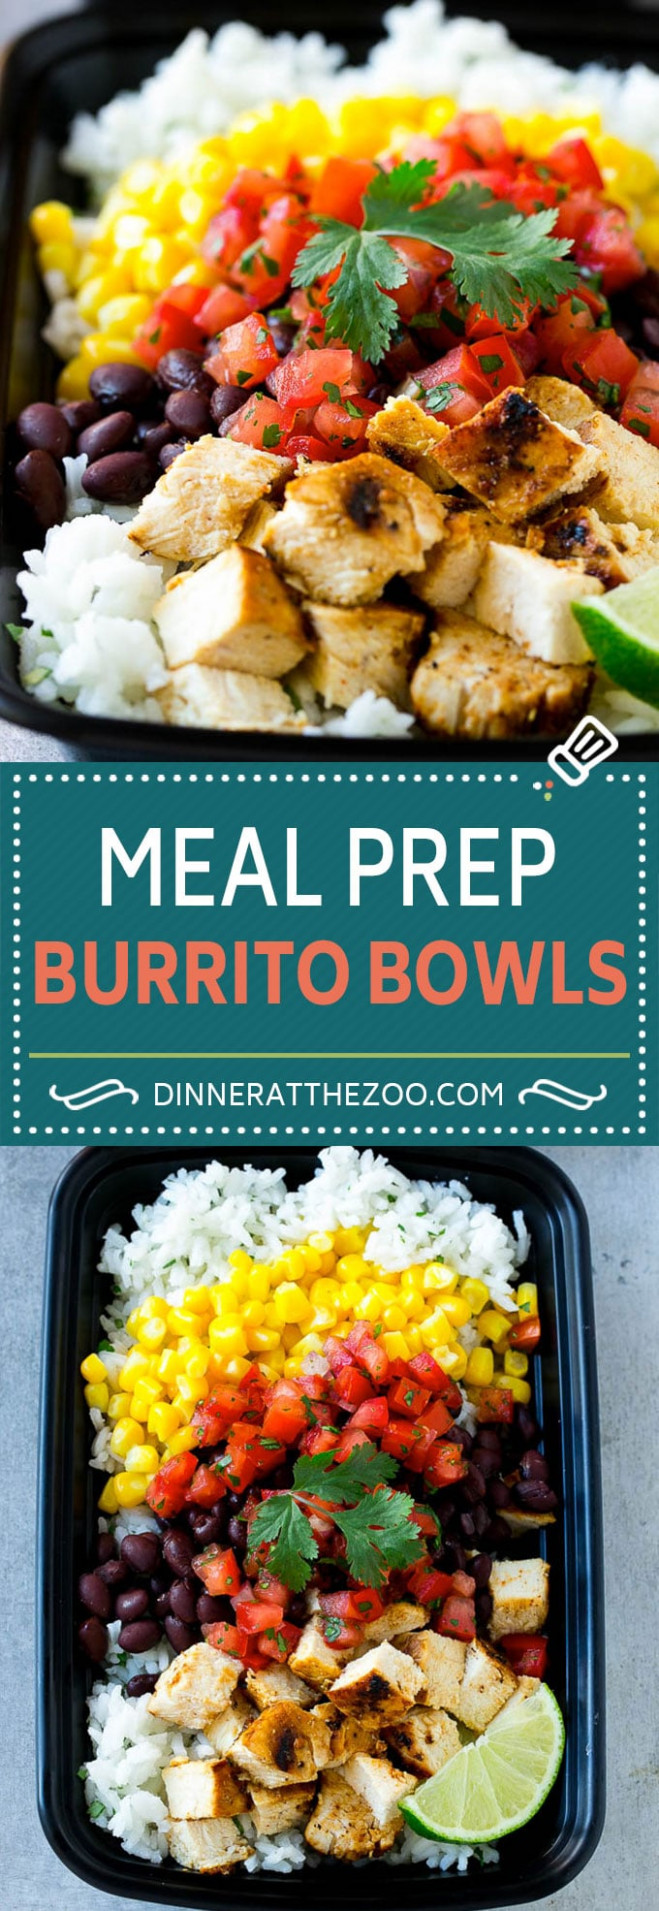 11 Easy Meal Prep Recipes - Dinner at the Zoo